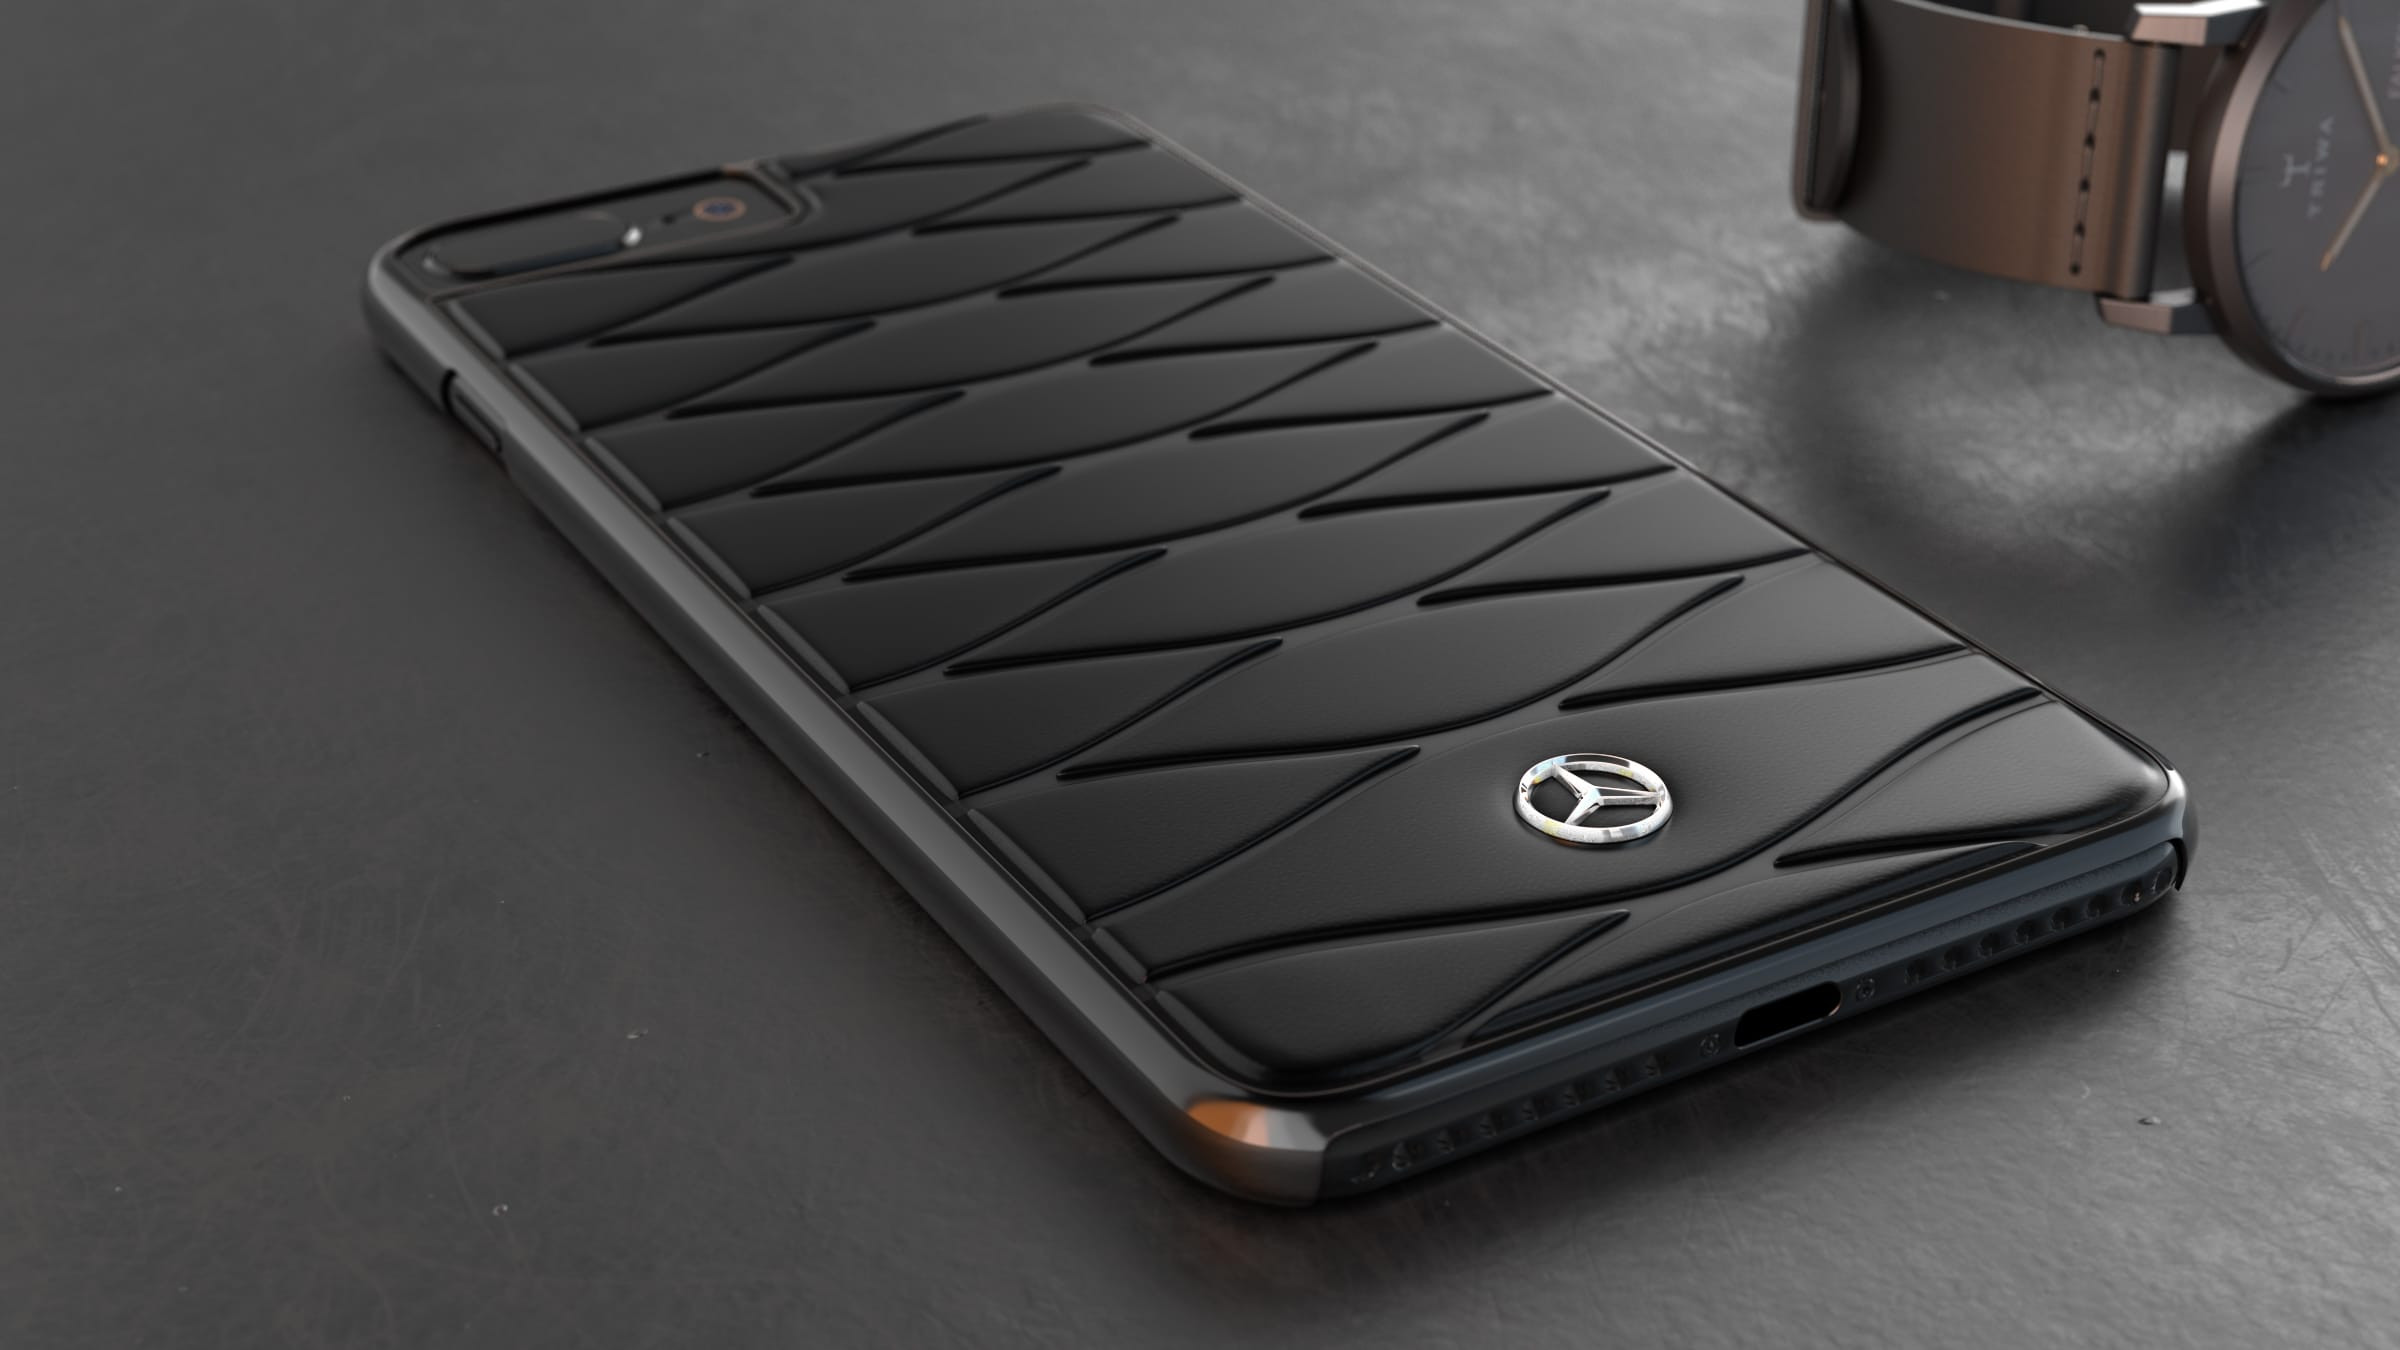 Mercedes benz apple iphone 7 8 superaza luxurious for Www mercedes benz mobile com iphone